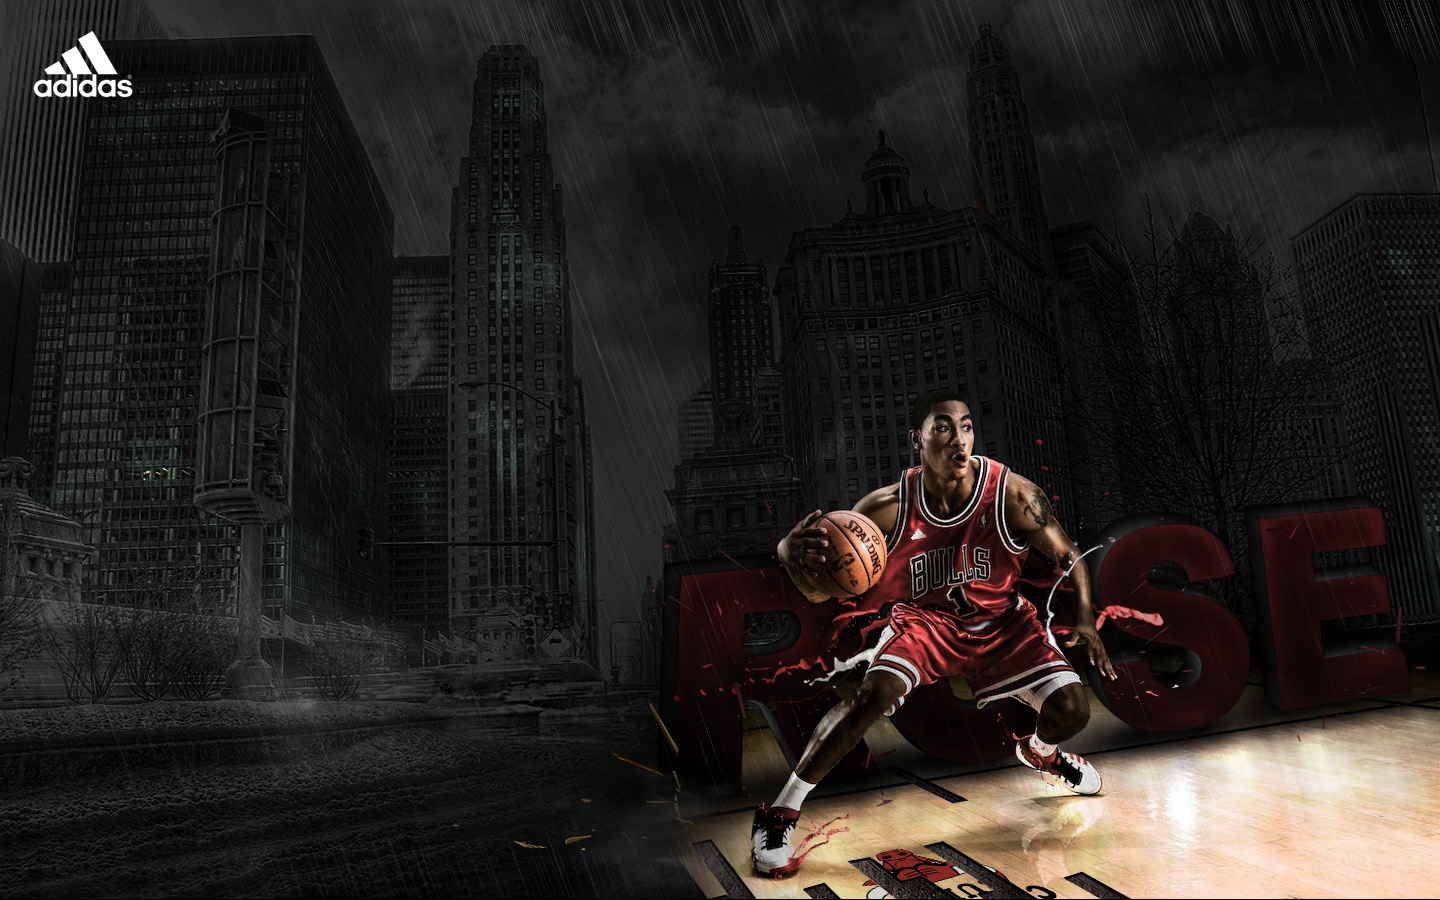 Derrick Rose Chicago Bulls Wallpaper Full HD For Desktop 1440x900